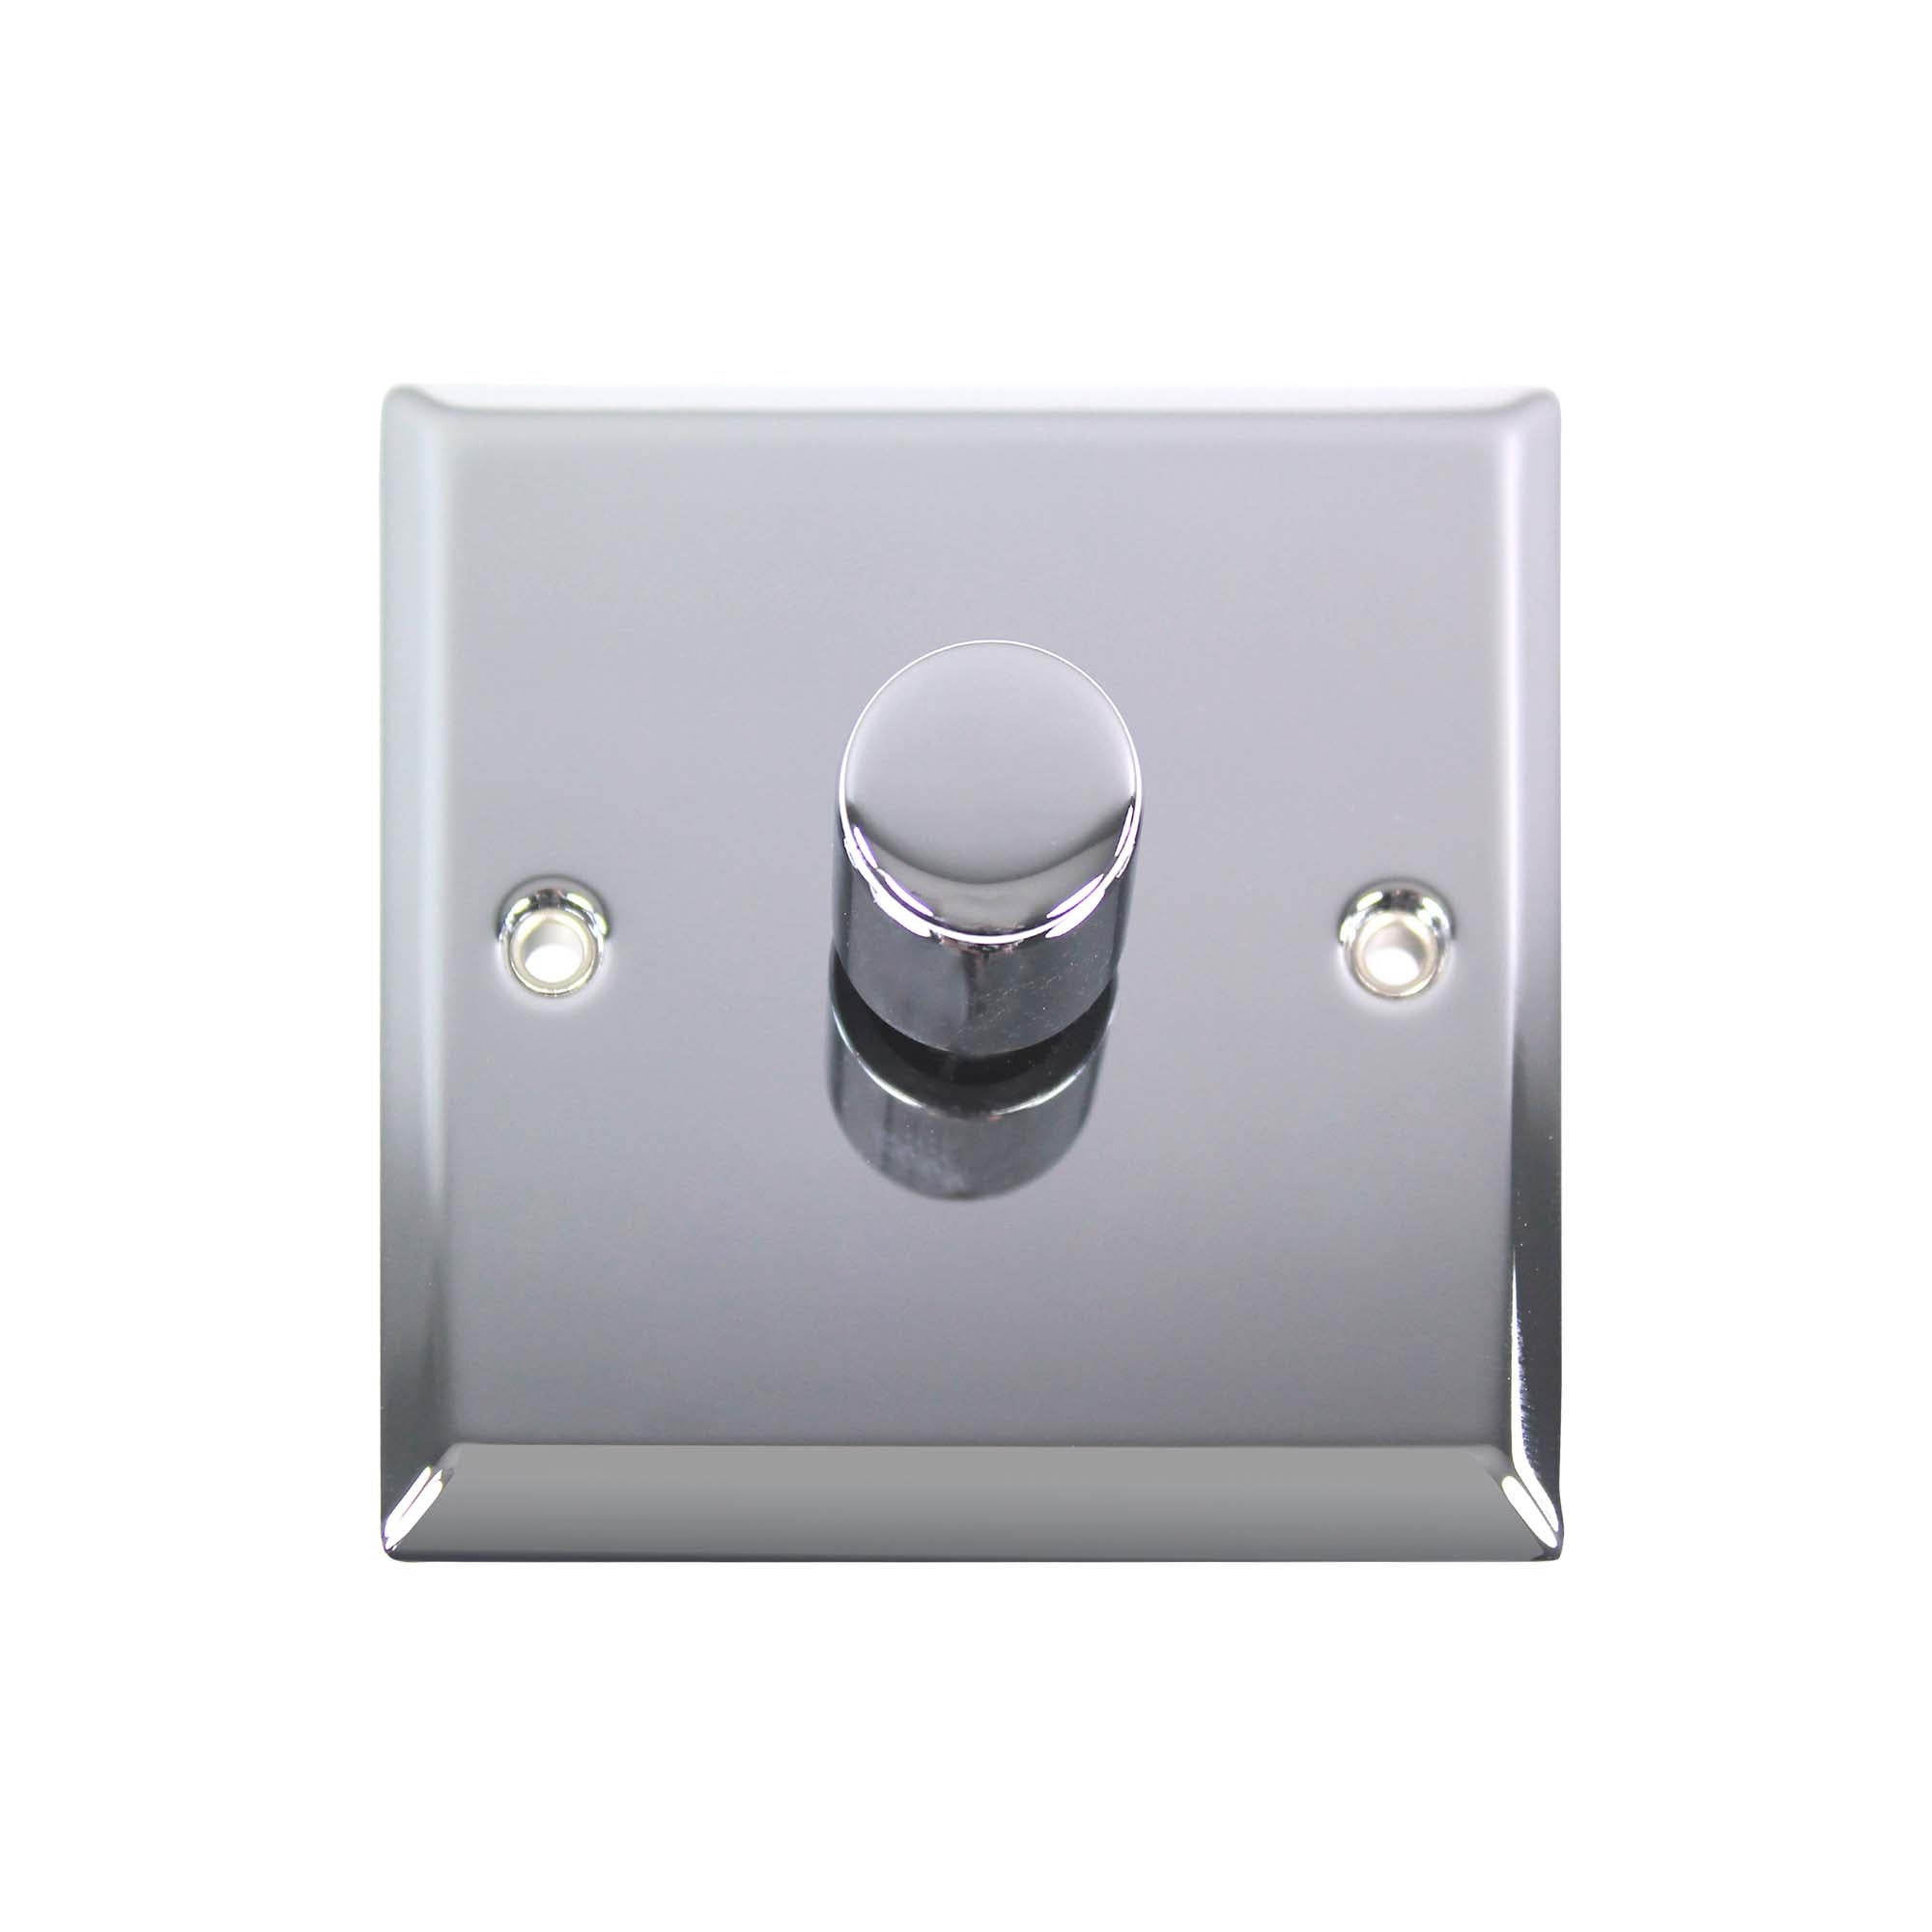 Image of 1 Gang 2 Way Chrome Dimmer Switch Silver